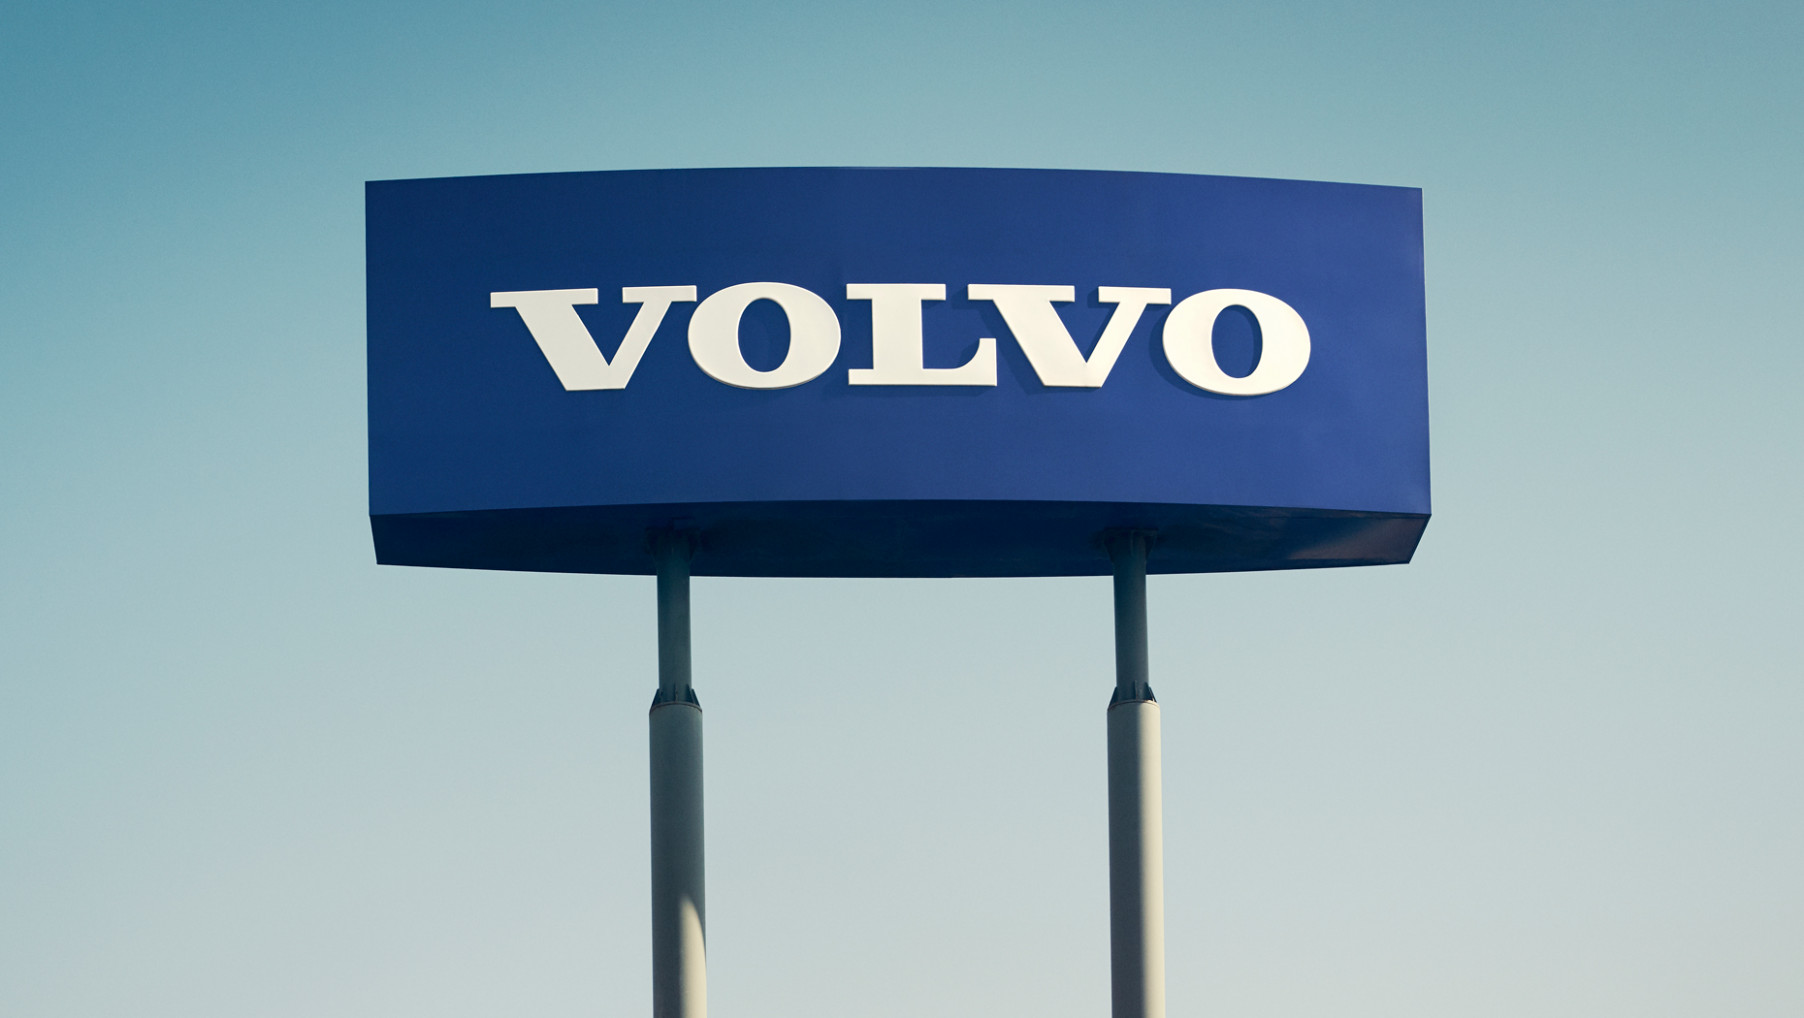 AB Volvo's Board of Directors withdraws proposal of extra dividend ...